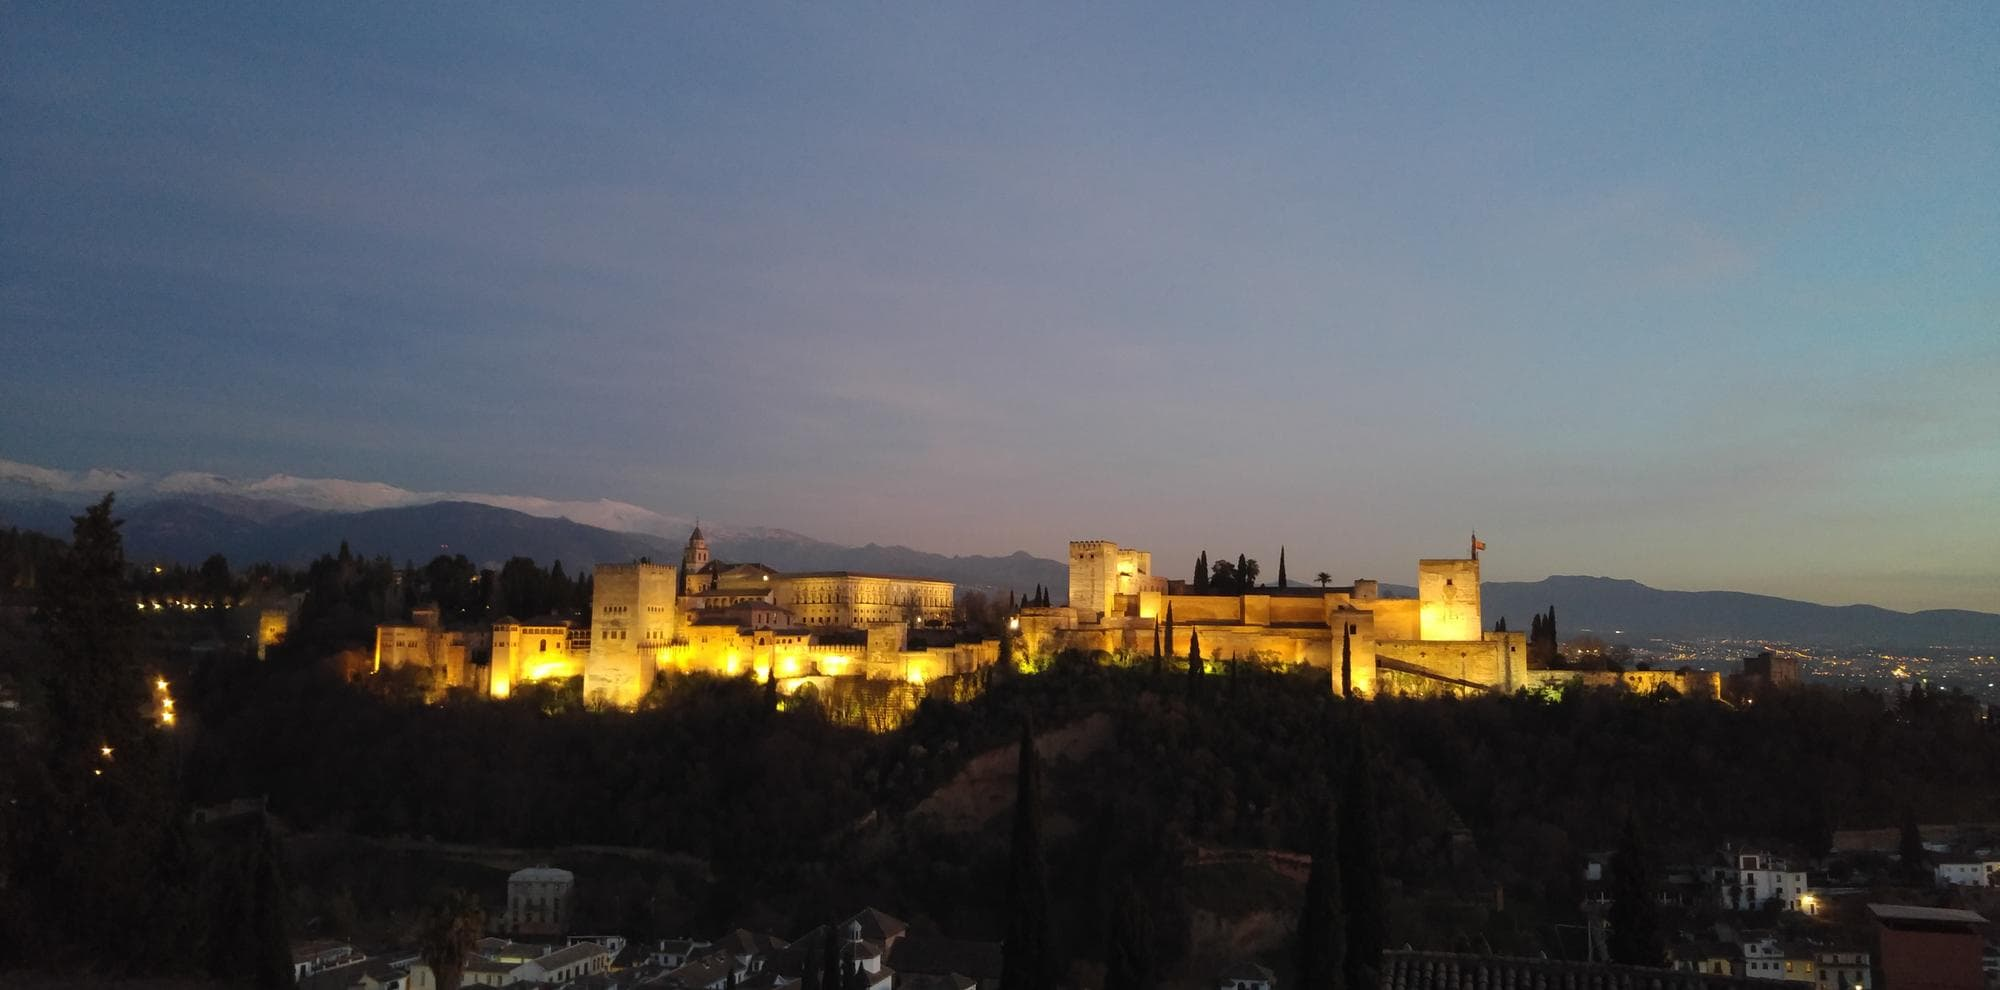 Ian's photo of the Alhambra in Granada at night